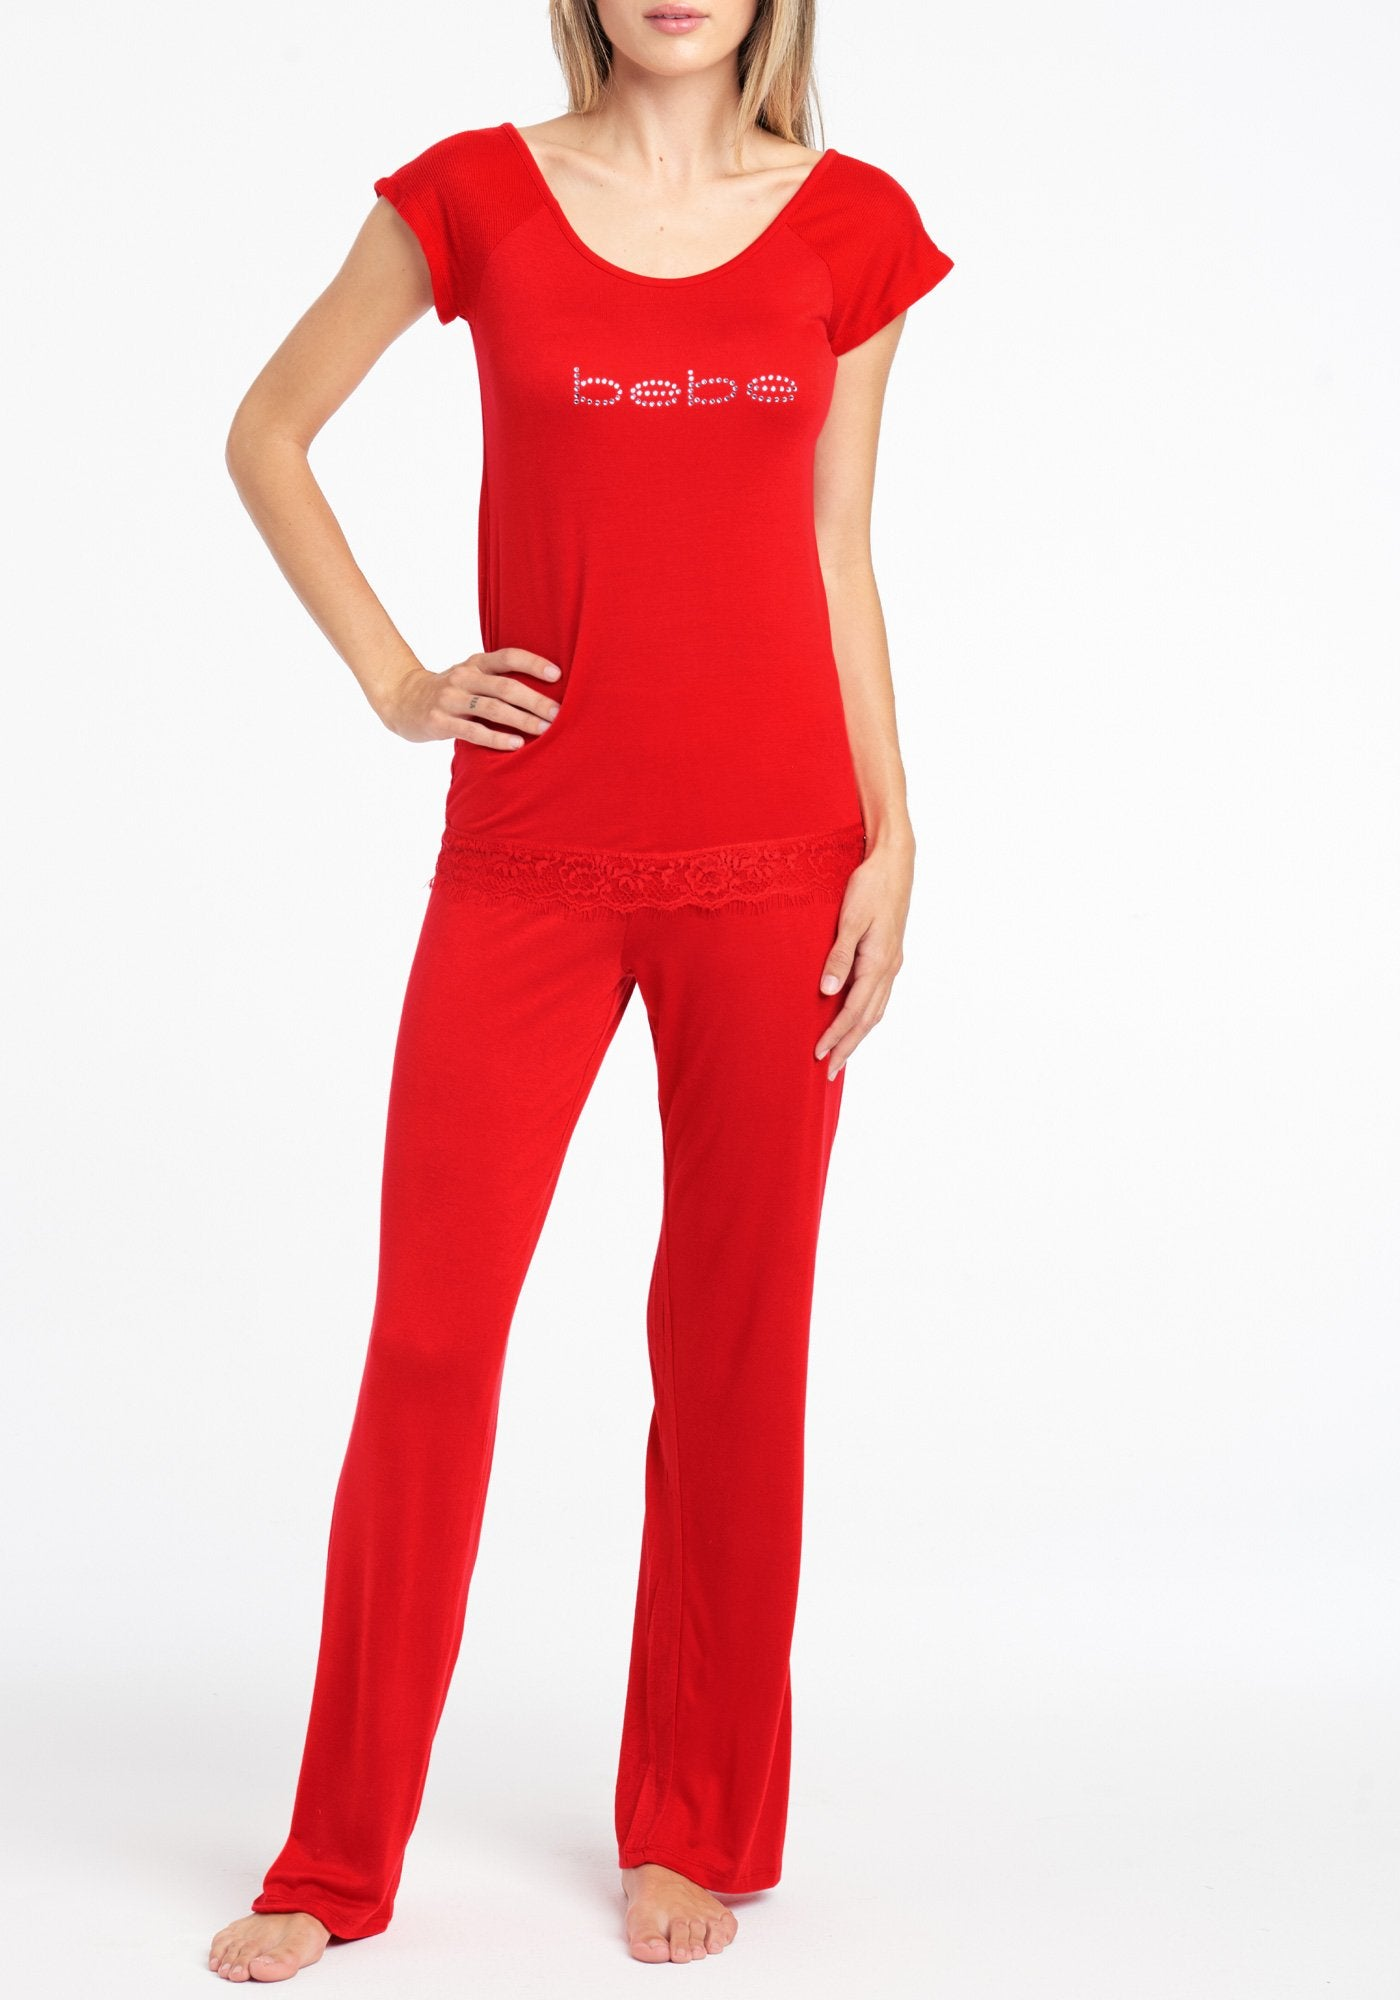 Women's Bebe Lace Trim Pant Set, Size Small in Red Spandex